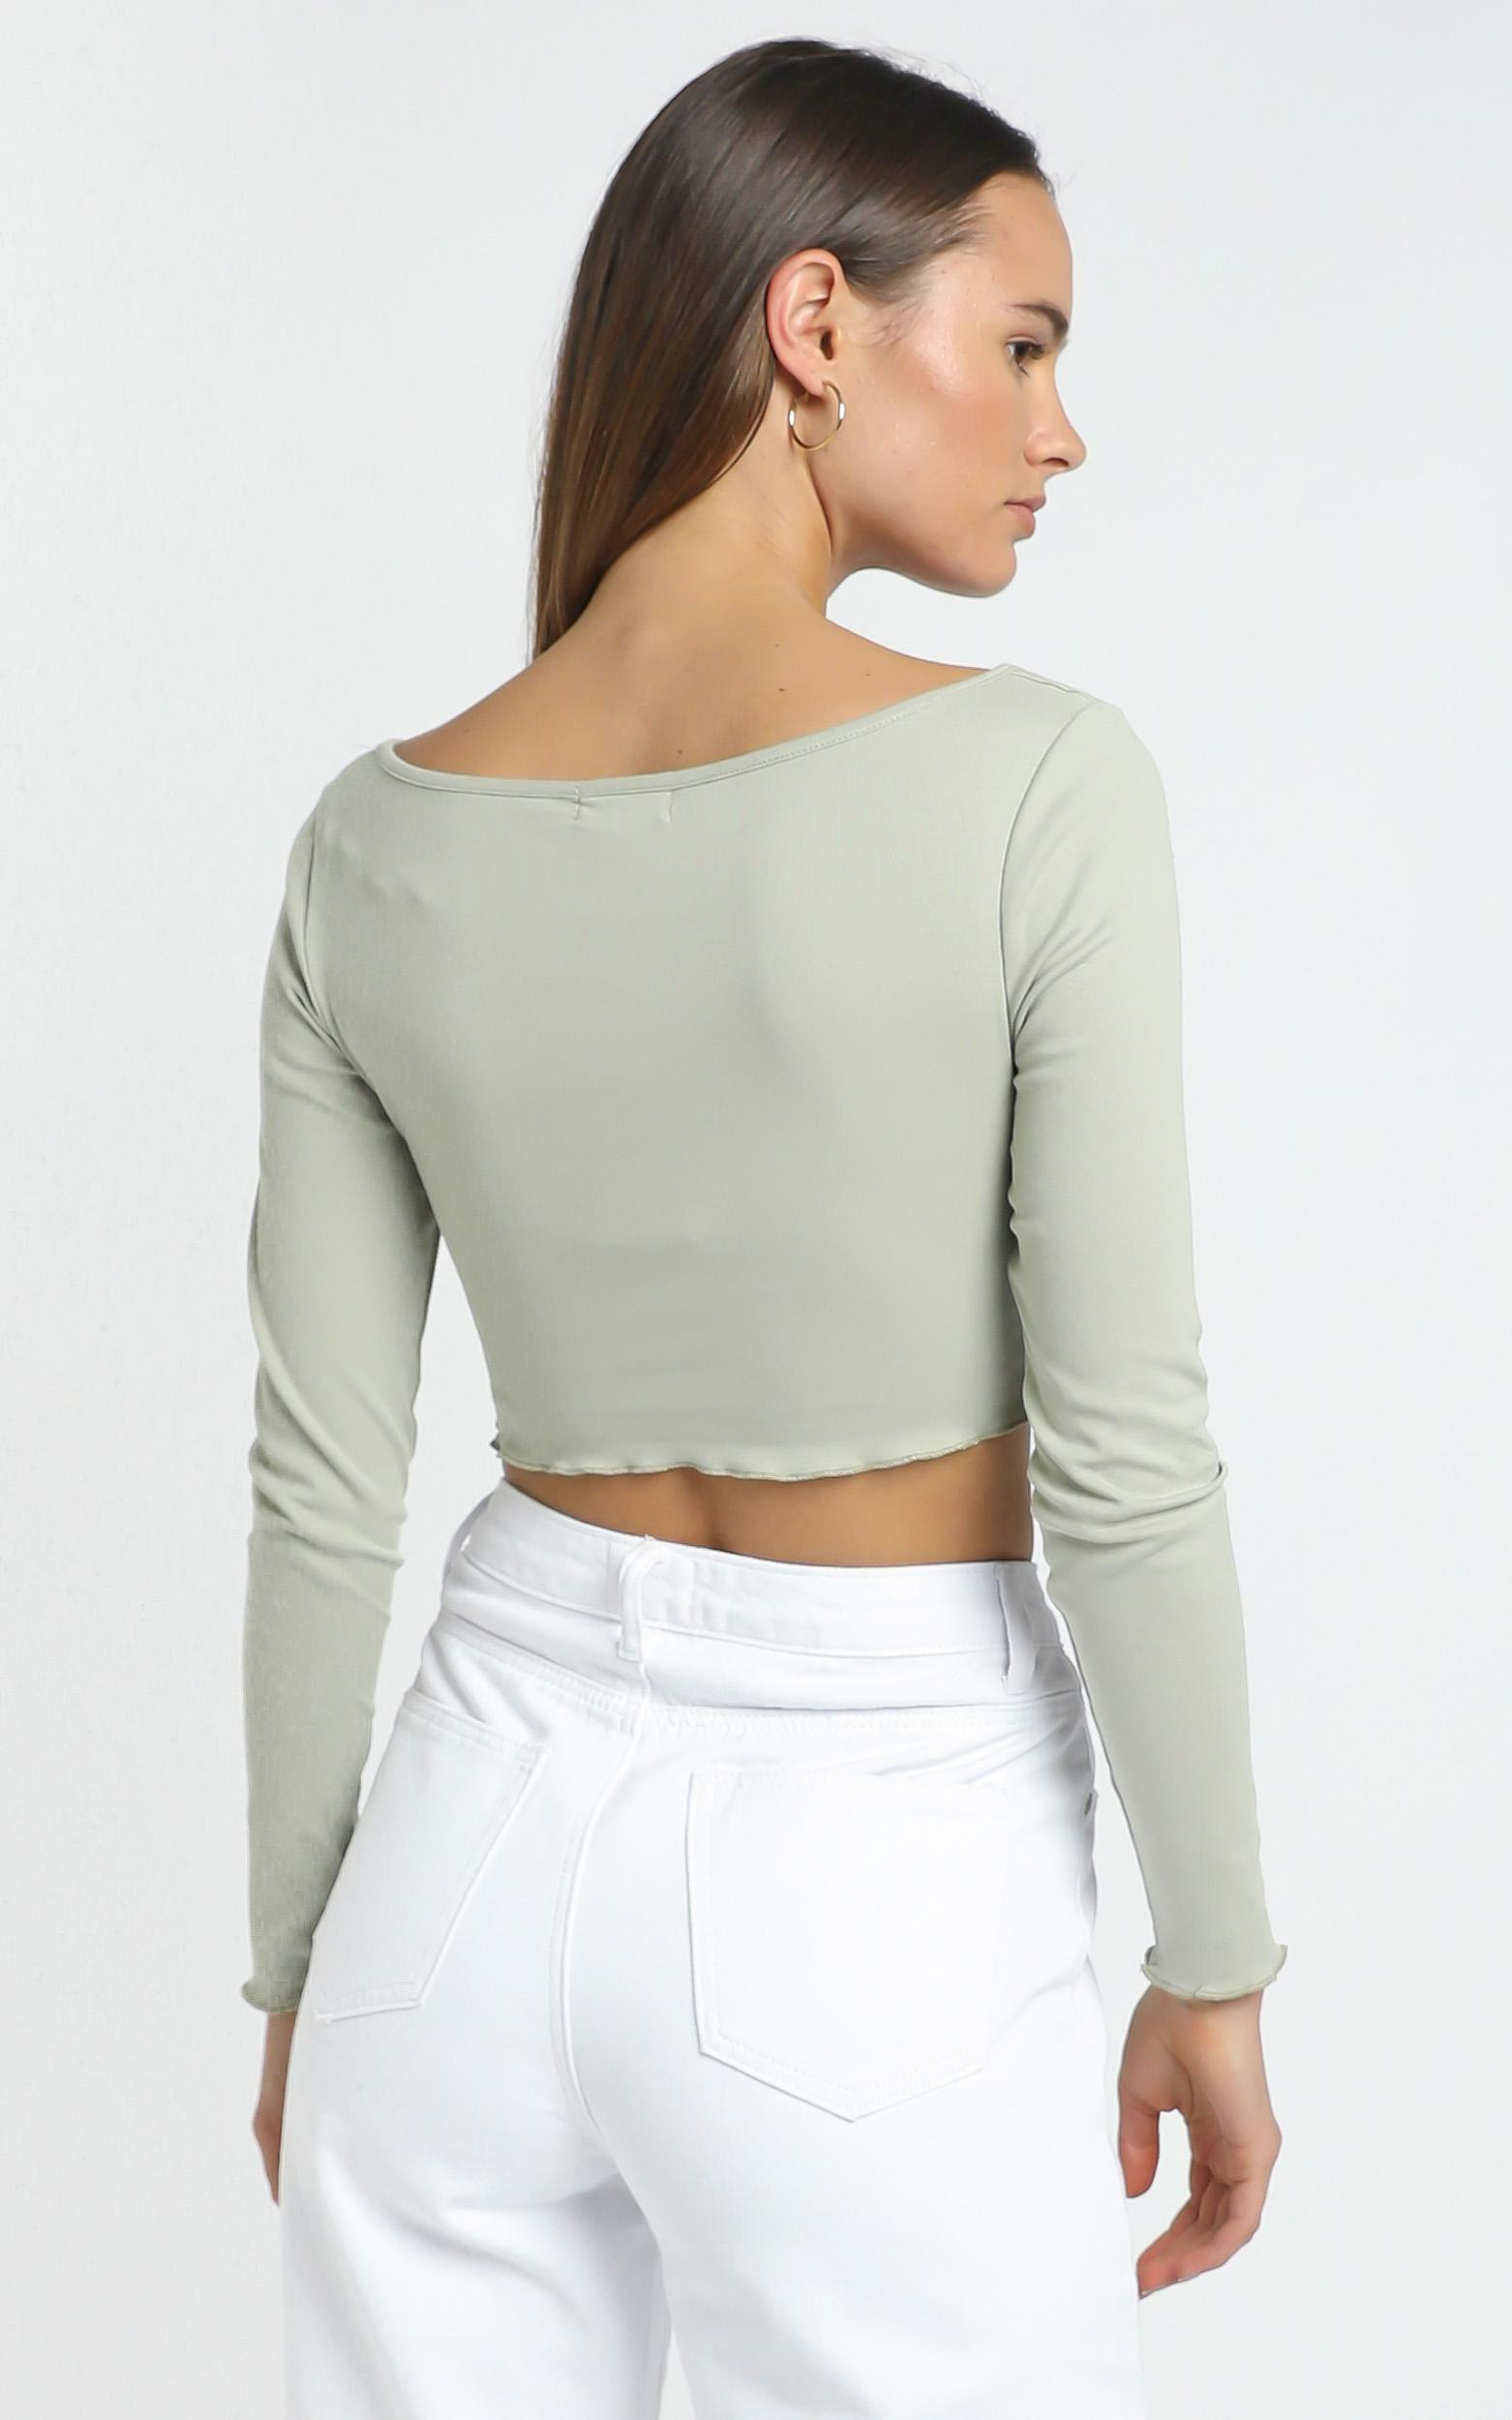 Antonio Top in Light Khaki - 12 (L), Khaki, hi-res image number null